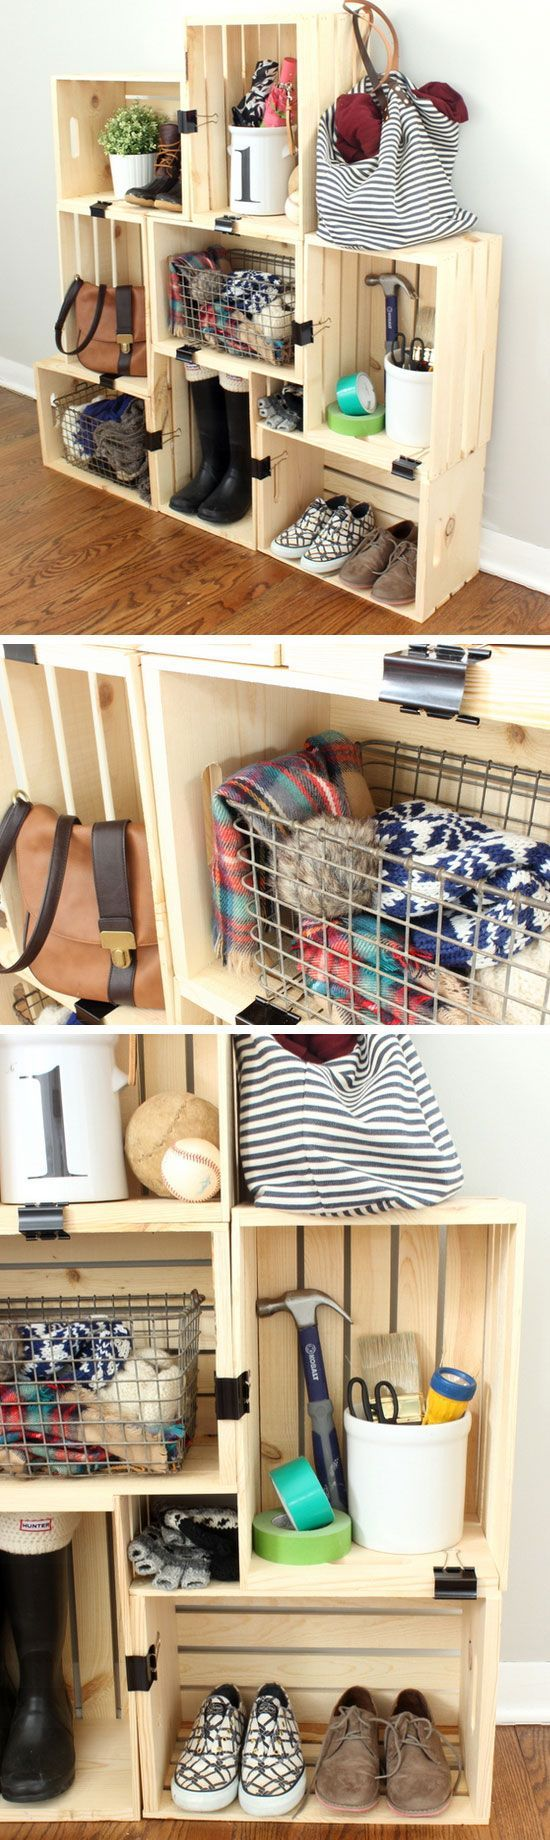 20 genius small apartment decortaing ideas & organization hacks